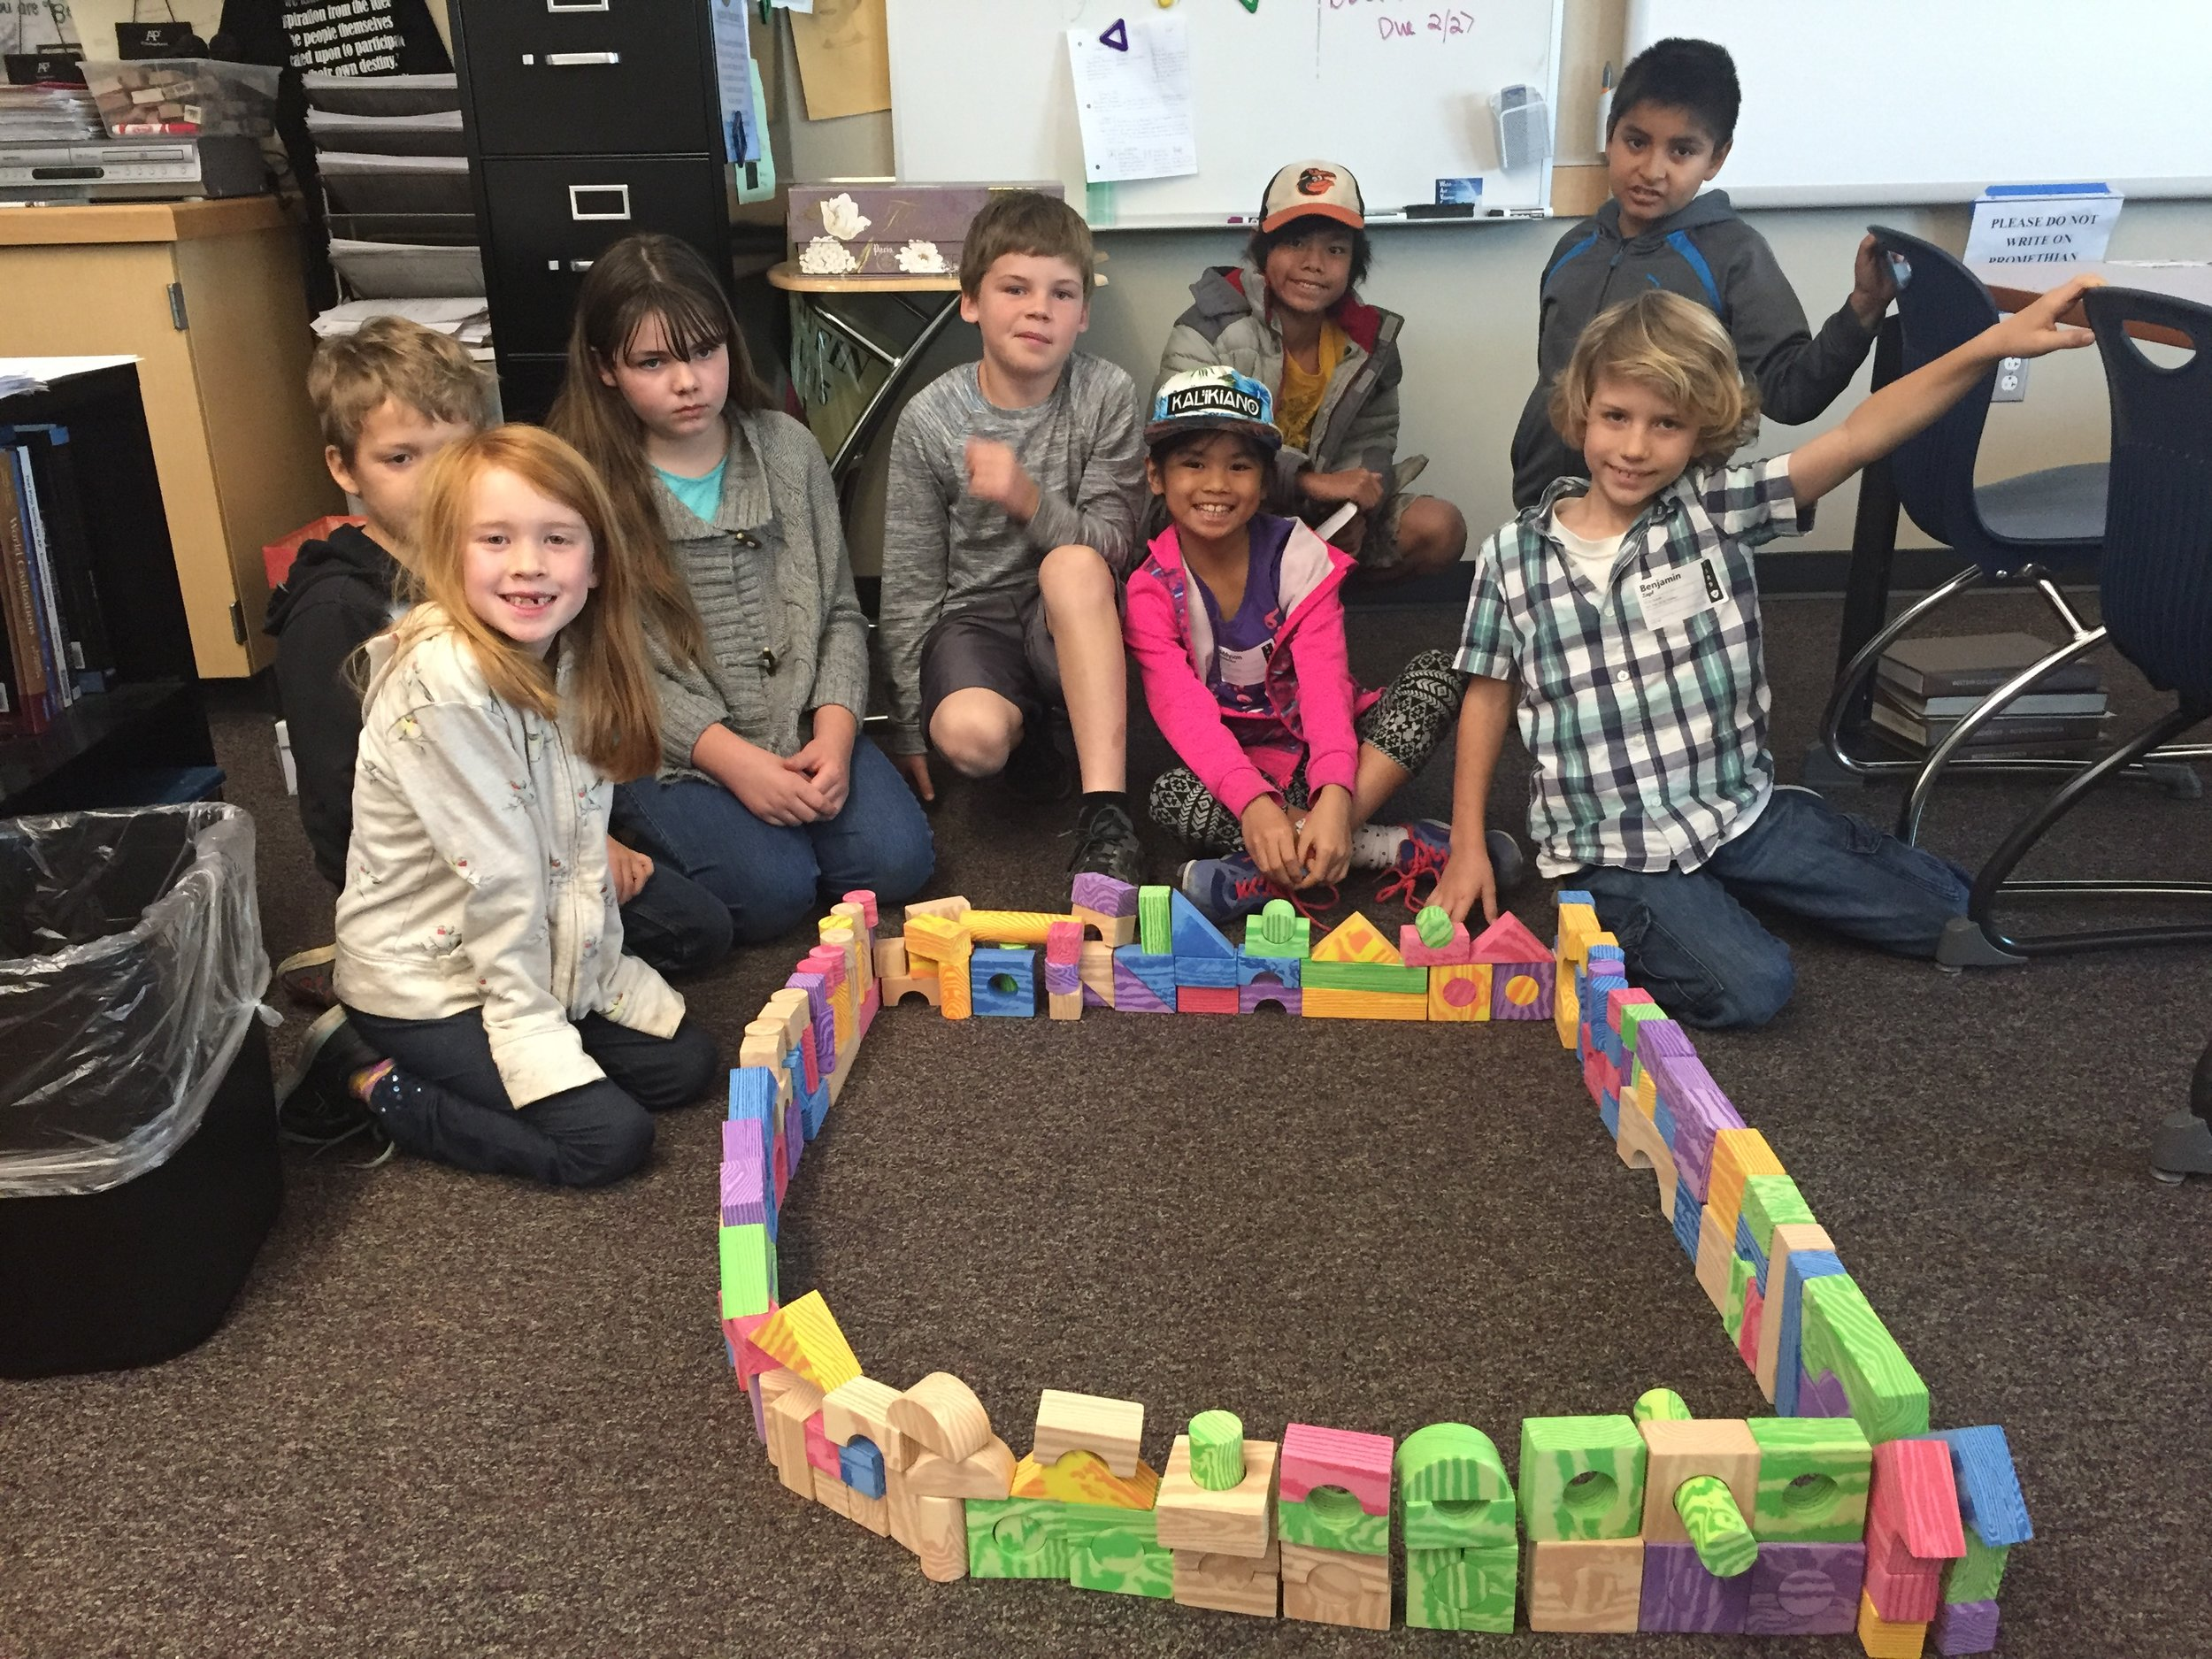 One of our Children's Ministry classes built their own wall while studying Nehemiah. Thank you to all our teachers who volunteers to teach our kiddos about Jesus!